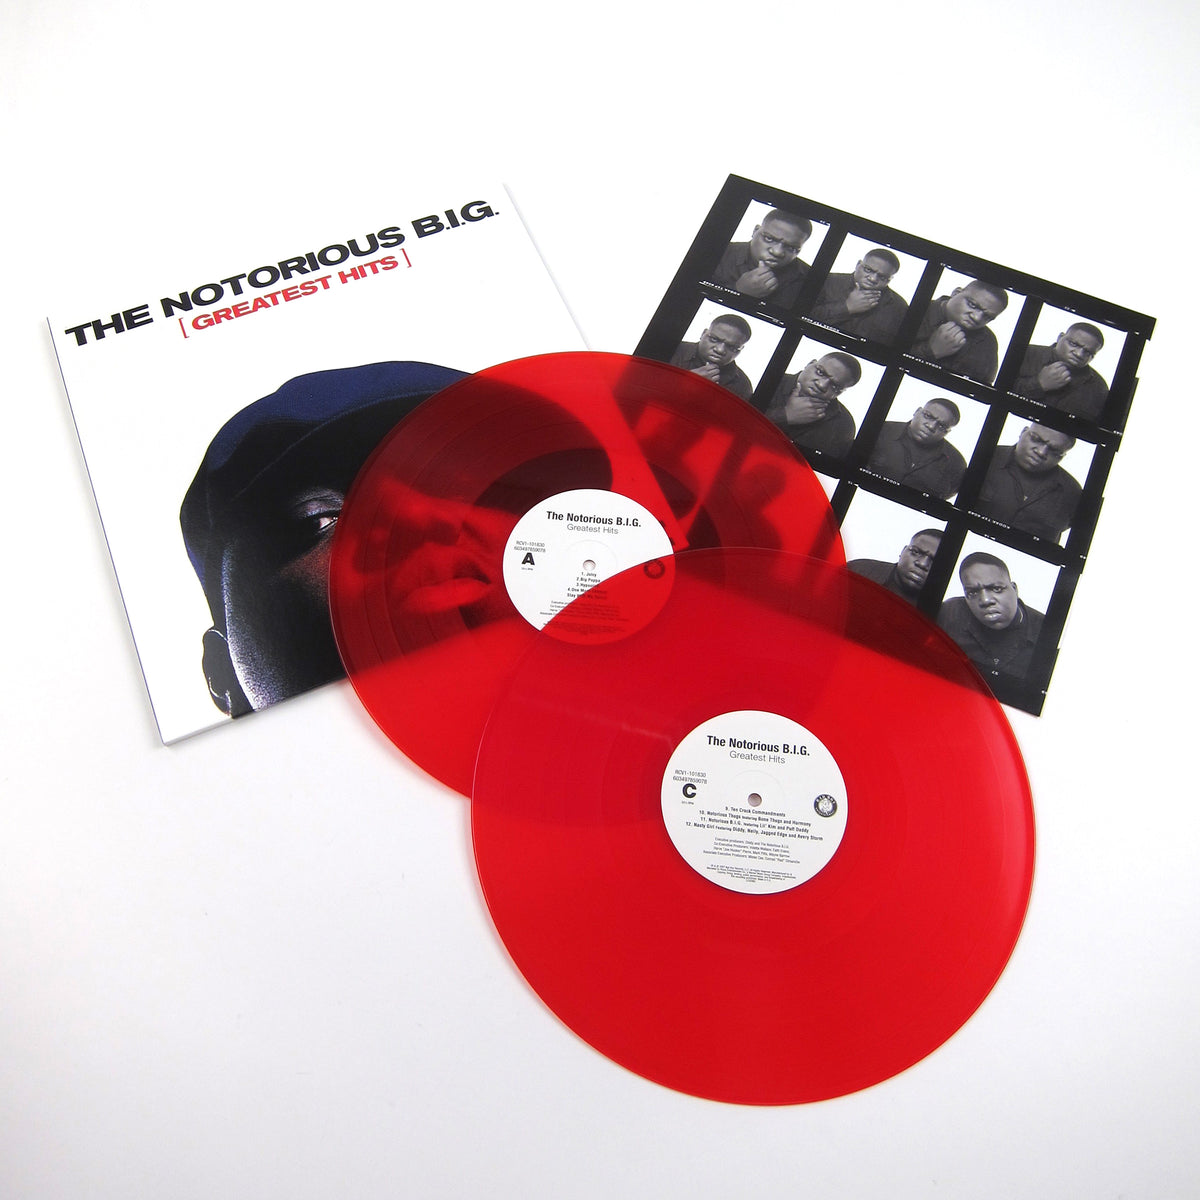 The Notorious B.I.G.: Greatest Hits (RSC Indie Exclusive Colored Vinyl) Vinyl 2LP